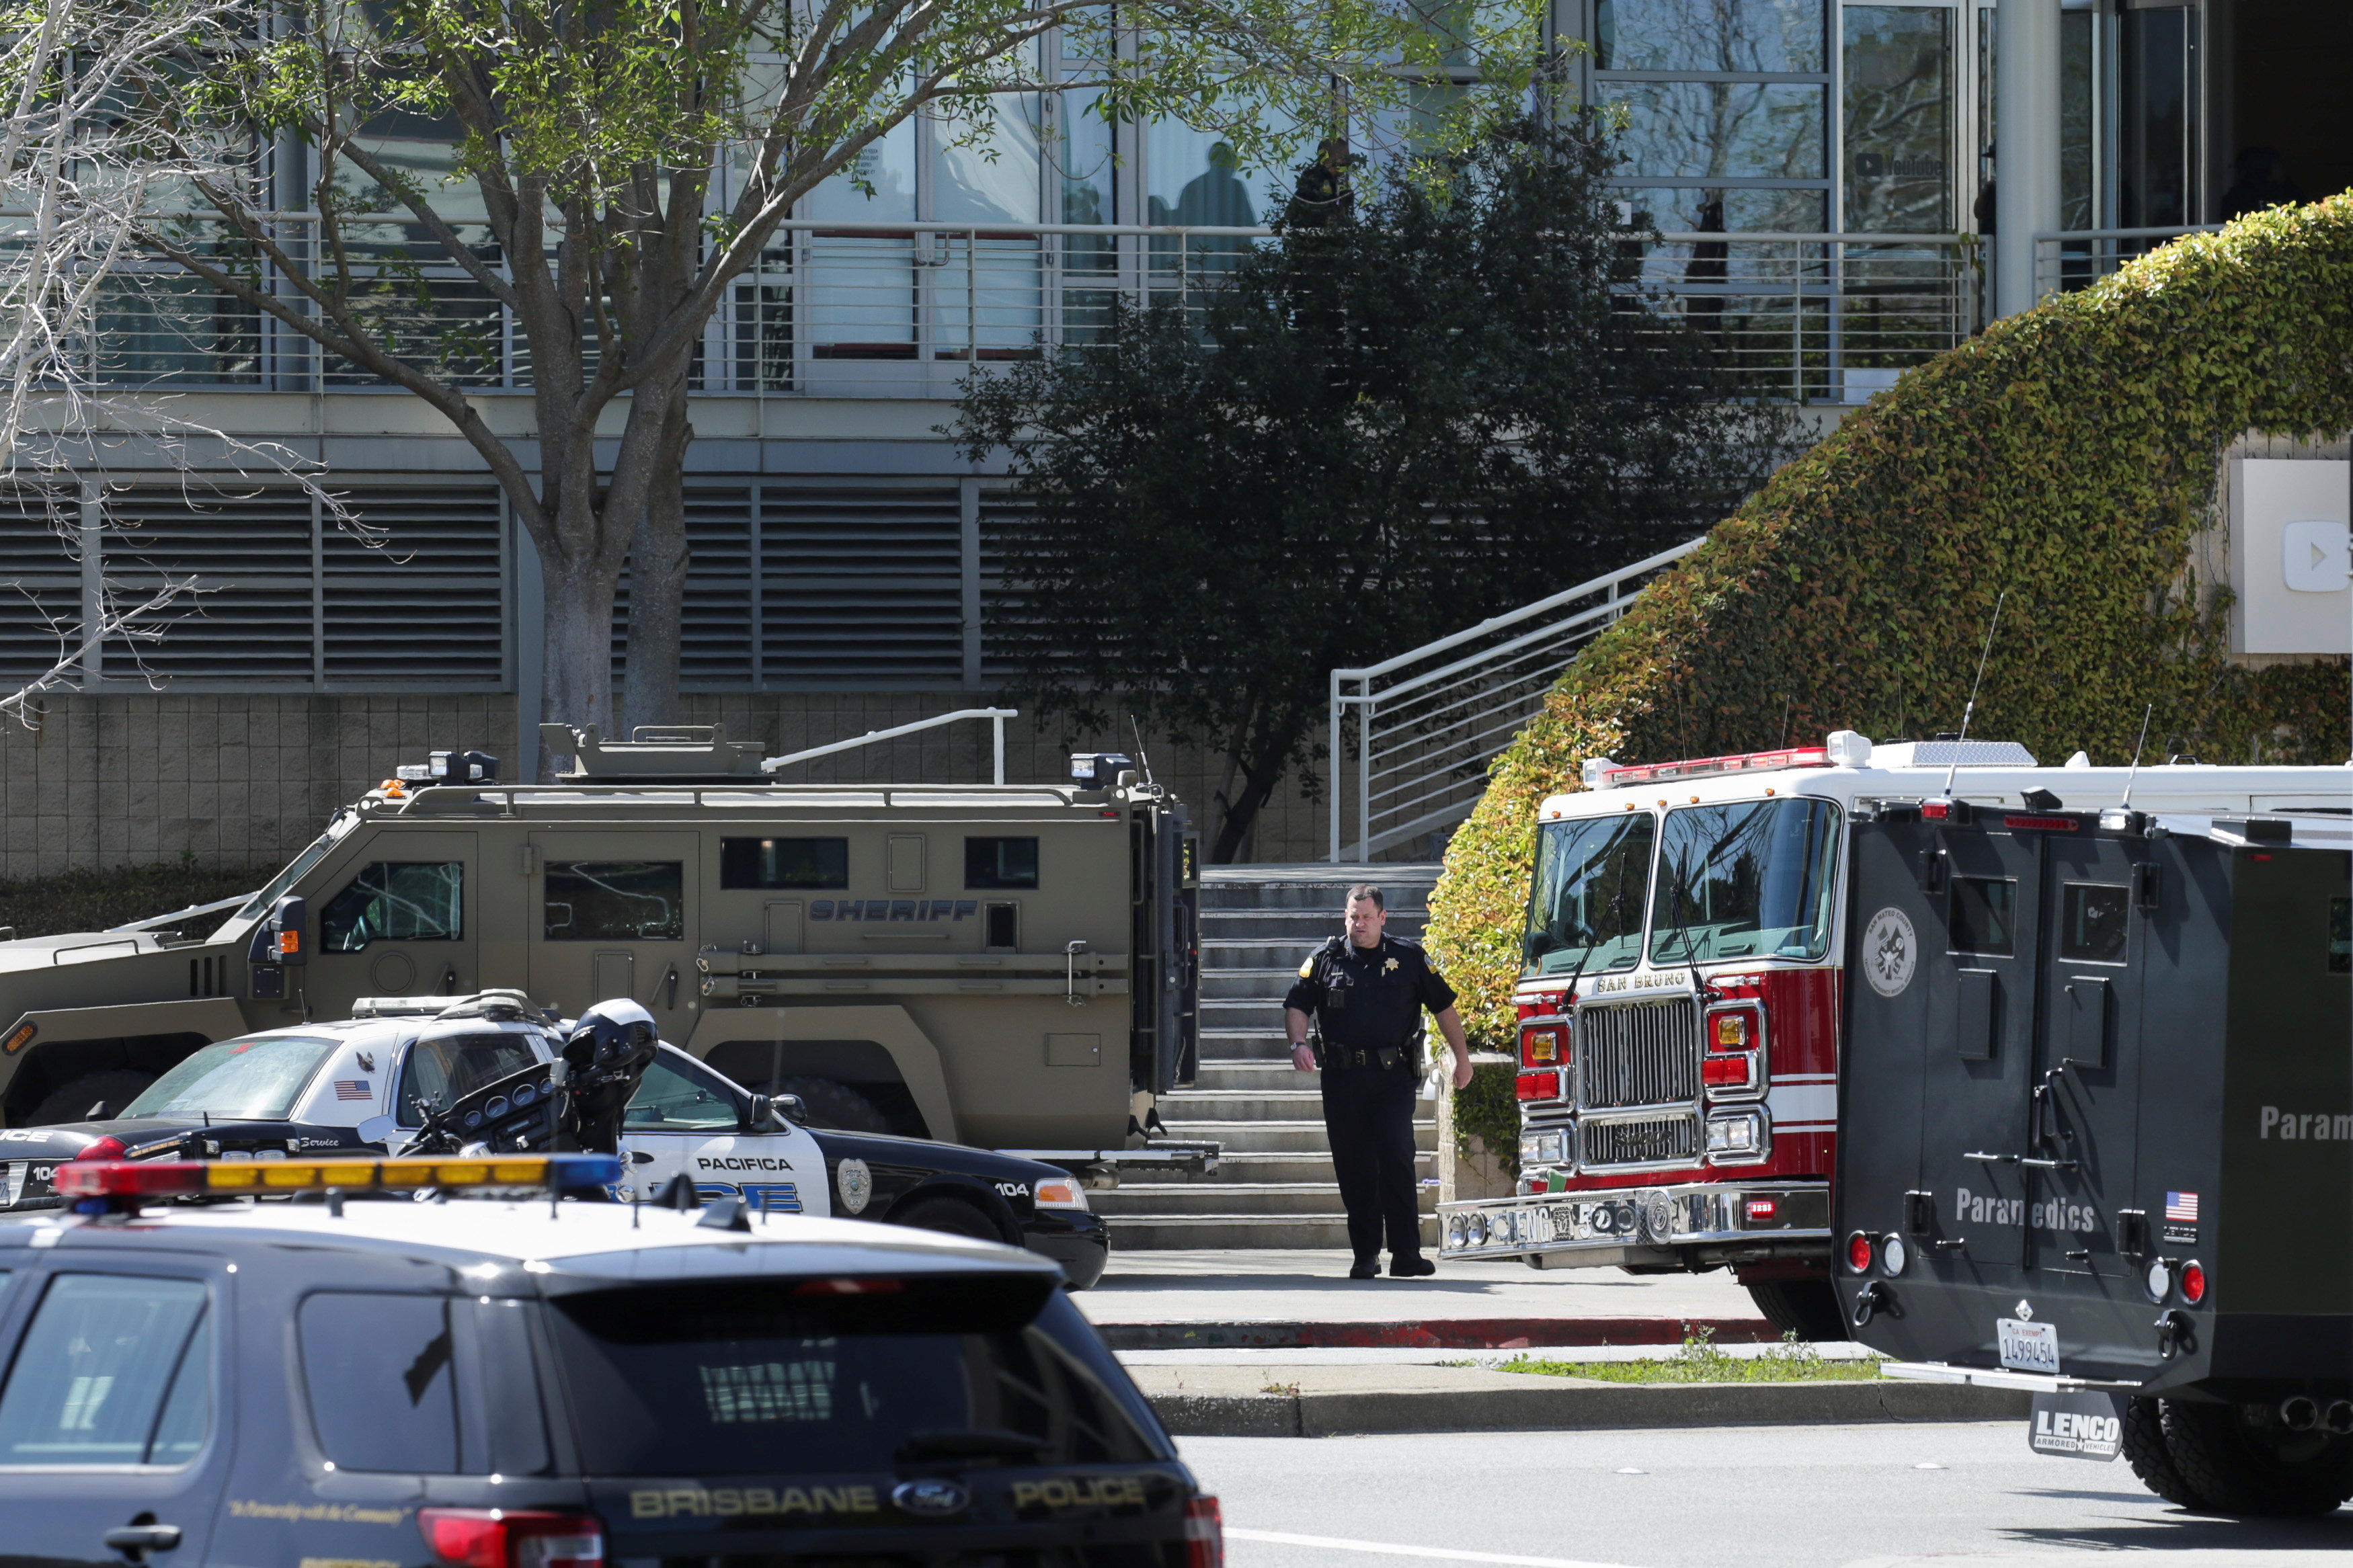 Police officers are seen at Youtube headquarters following an active shooter situation in San Bruno, California, U.S., April 3, 2018. REUTERS/Elijah Nouvelage